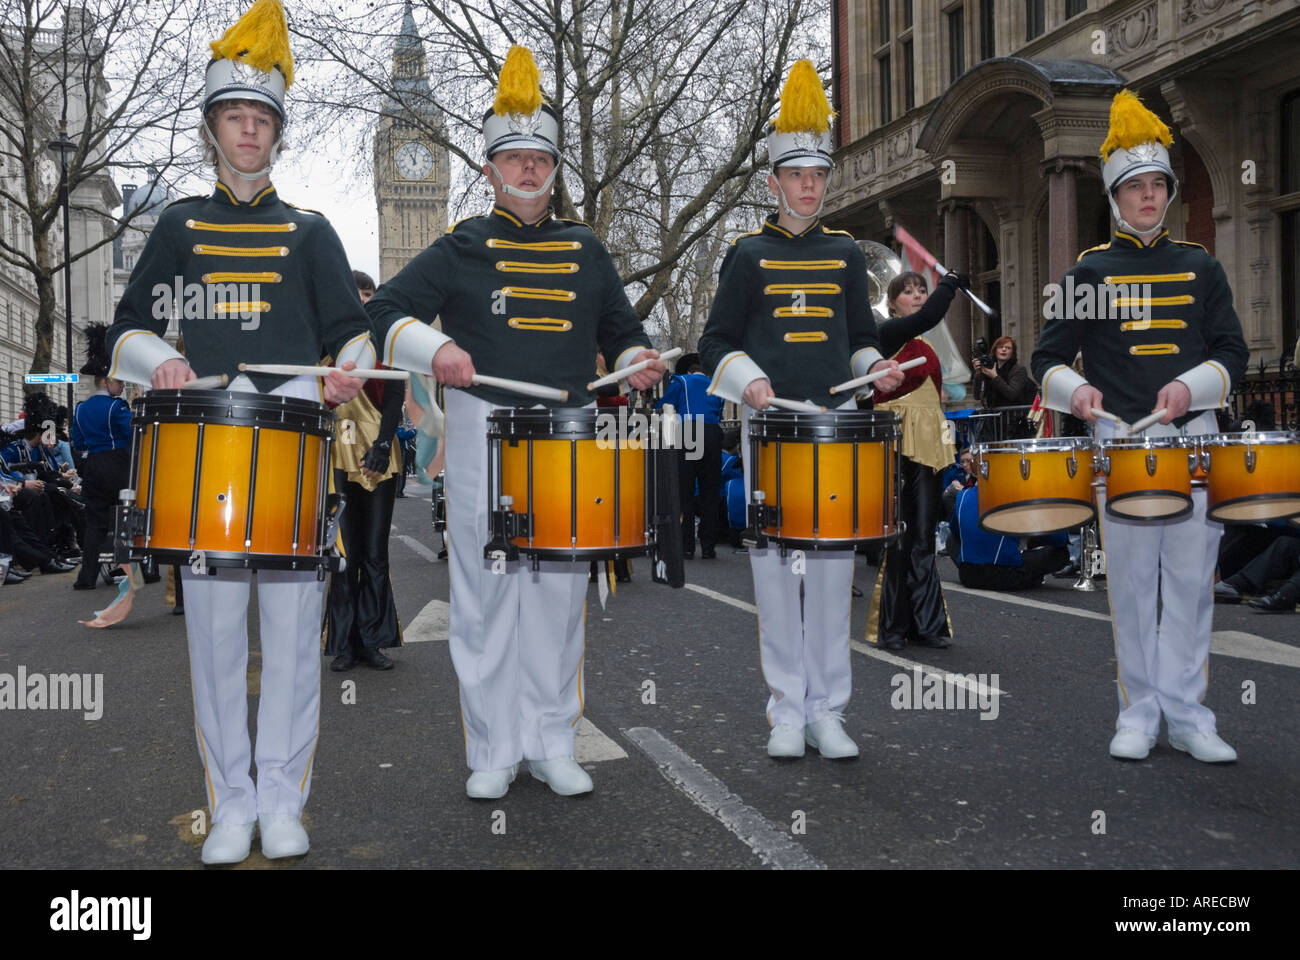 Four drummers from a US High School marching band form a line with Big Ben behind them in London New Year Parade. Stock Photo